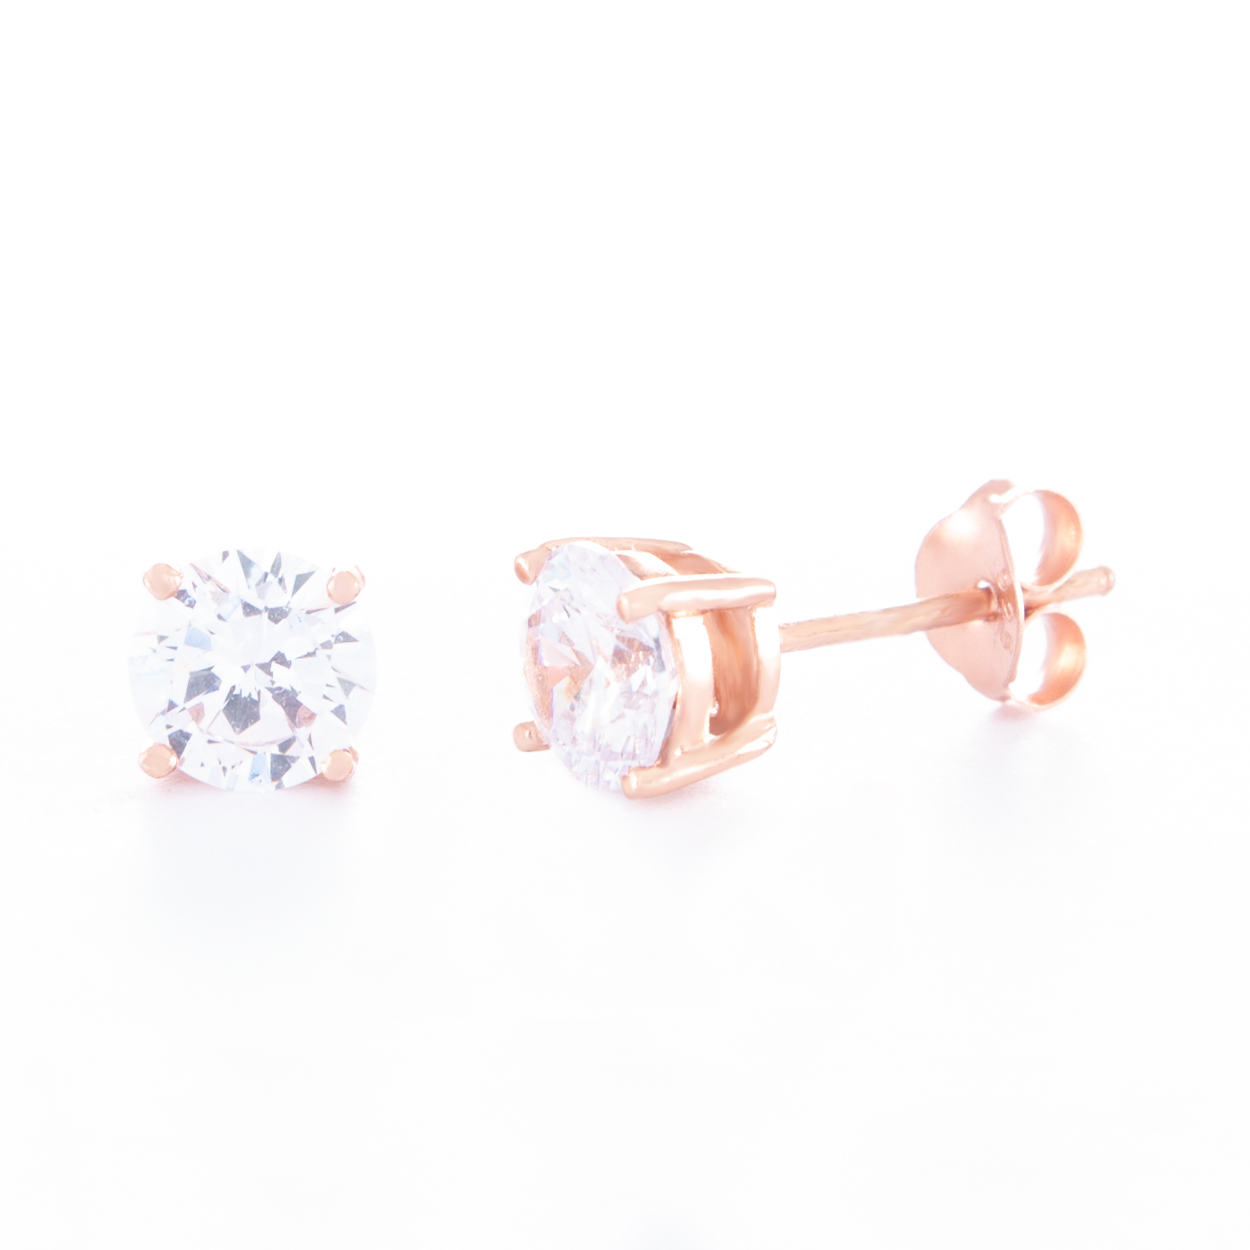 6mm-Cubic-Zirconia-Rose-Gold-Stud-Earrings